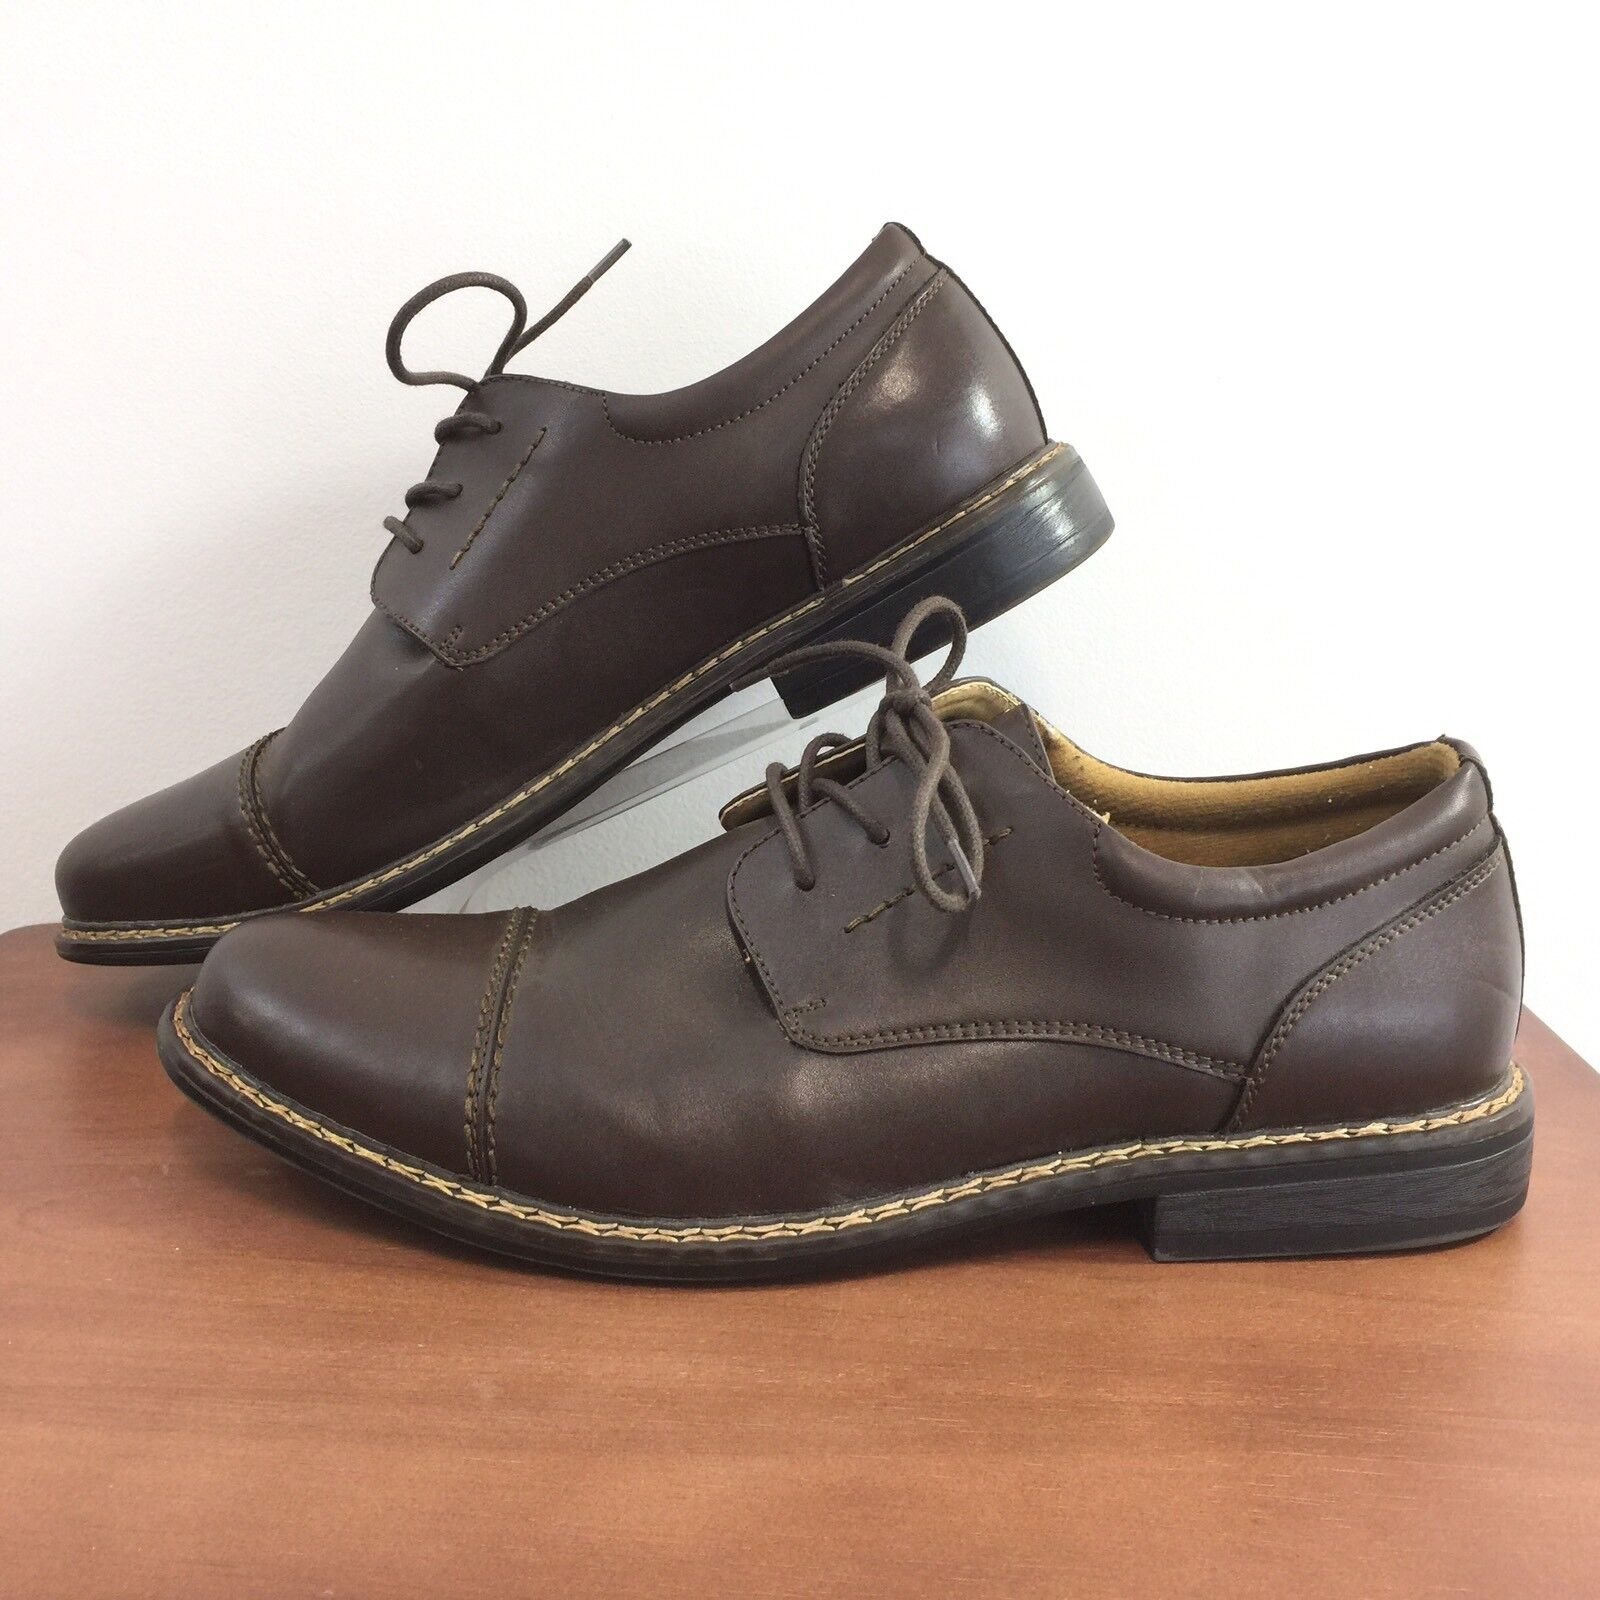 Dr Scholls Brown Leather Cap Toe Oxford Oxford Oxford Shoes Gel